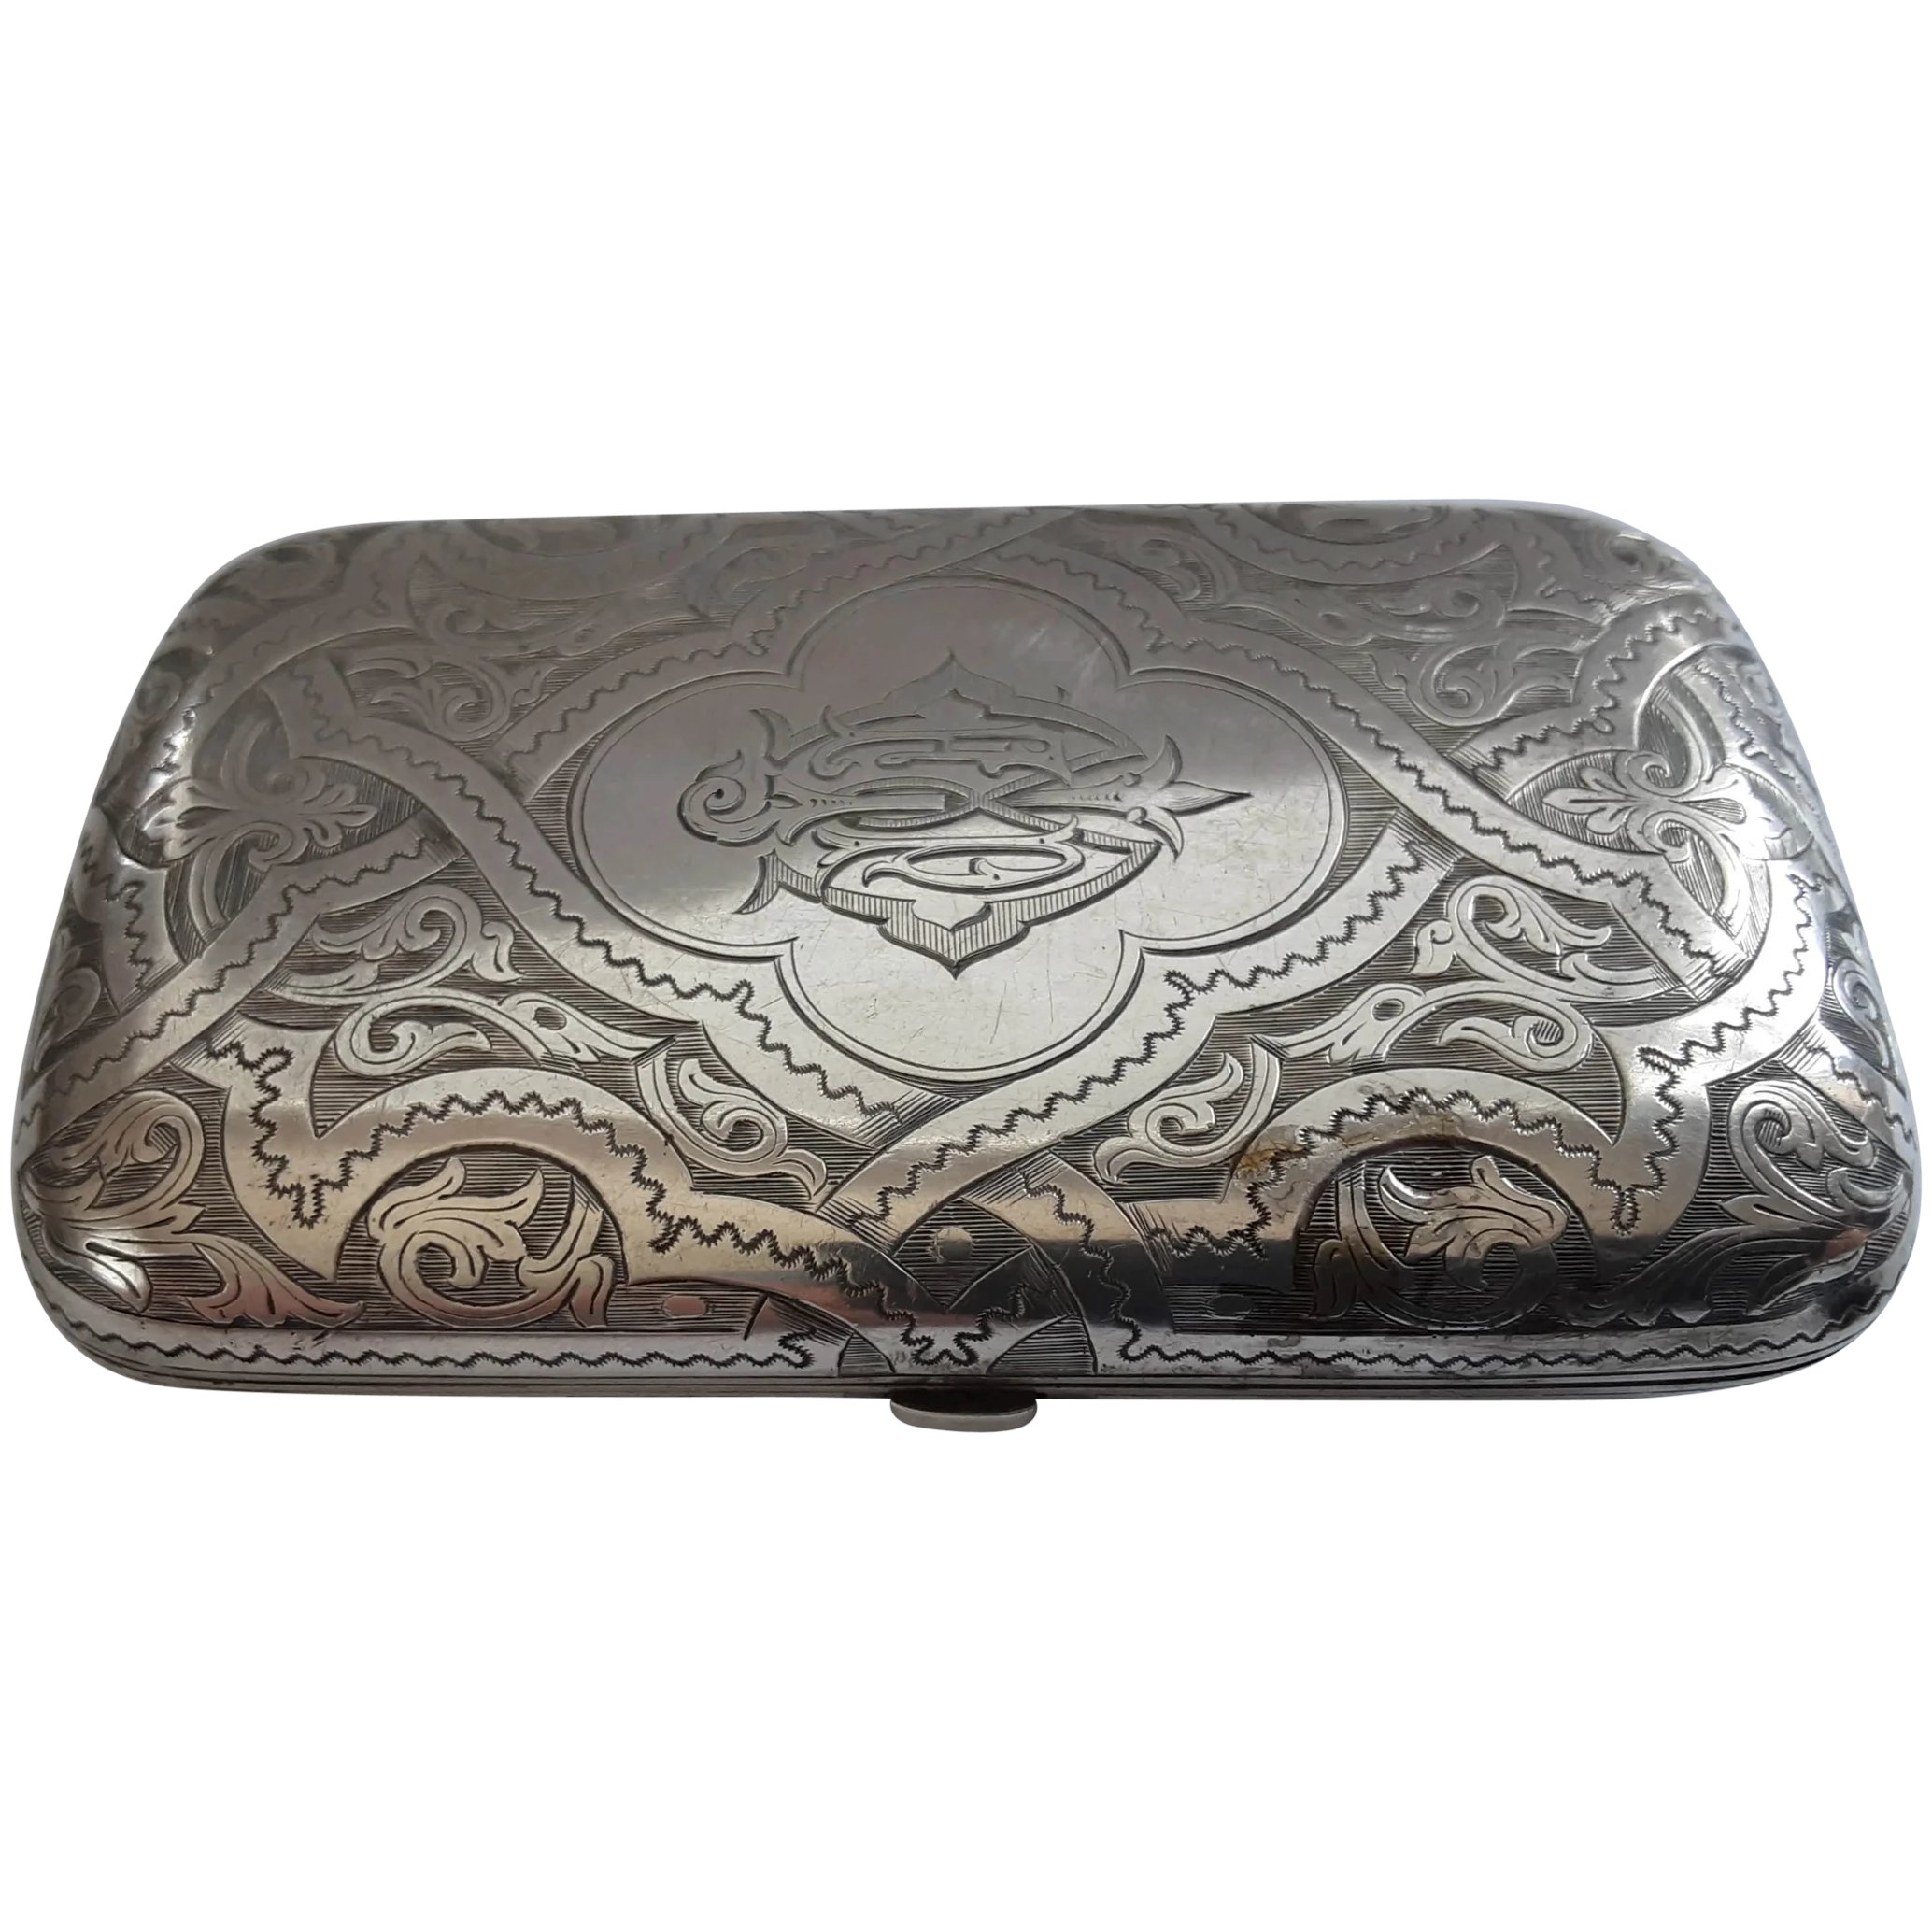 Ornate 1877 Victorian Sterling Silver Cheroot Case